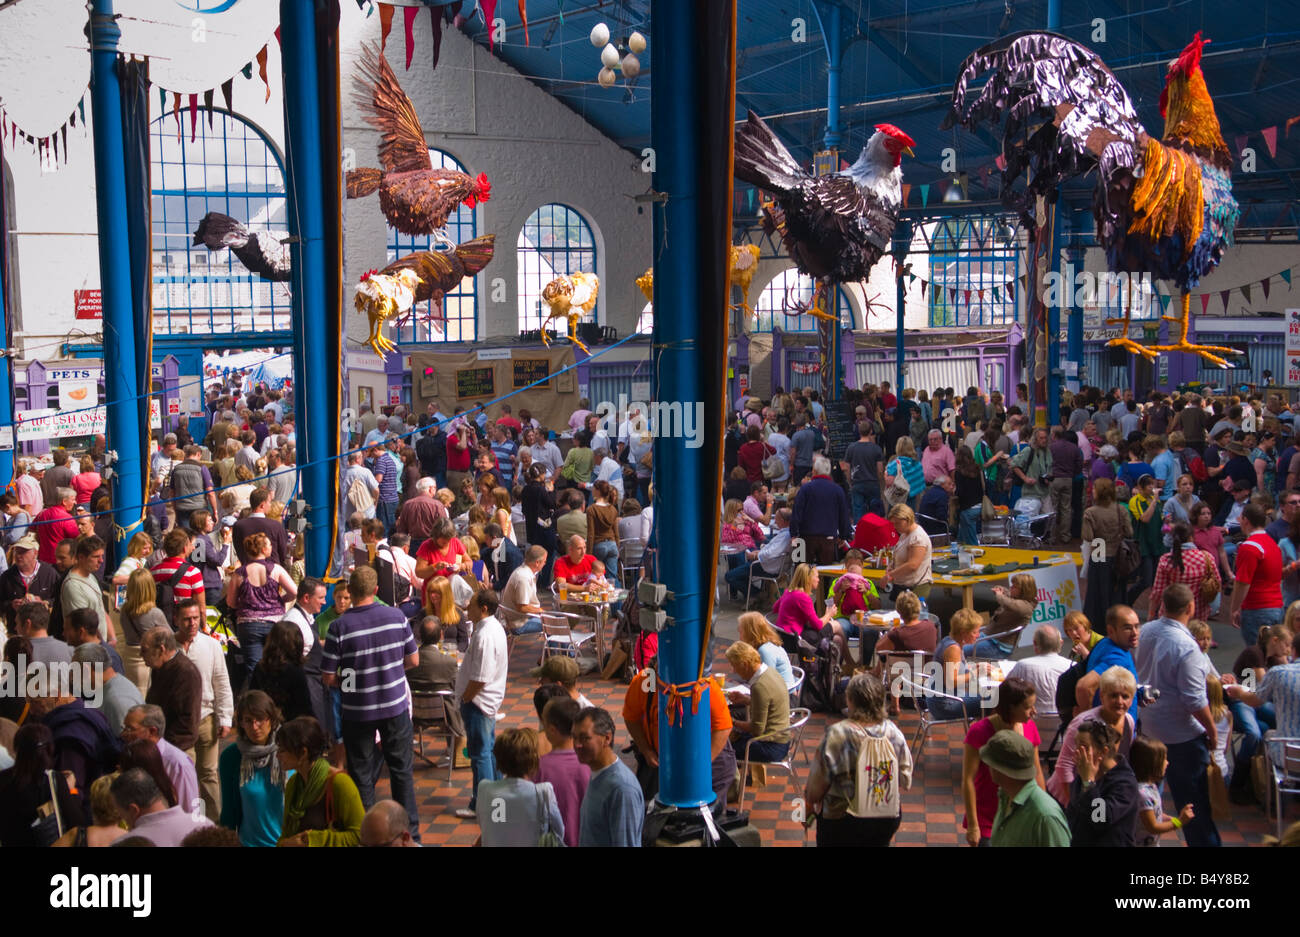 Crowds of people wander sit and browse stalls in the Market Hall during Abergavenny Food Festival - Stock Image